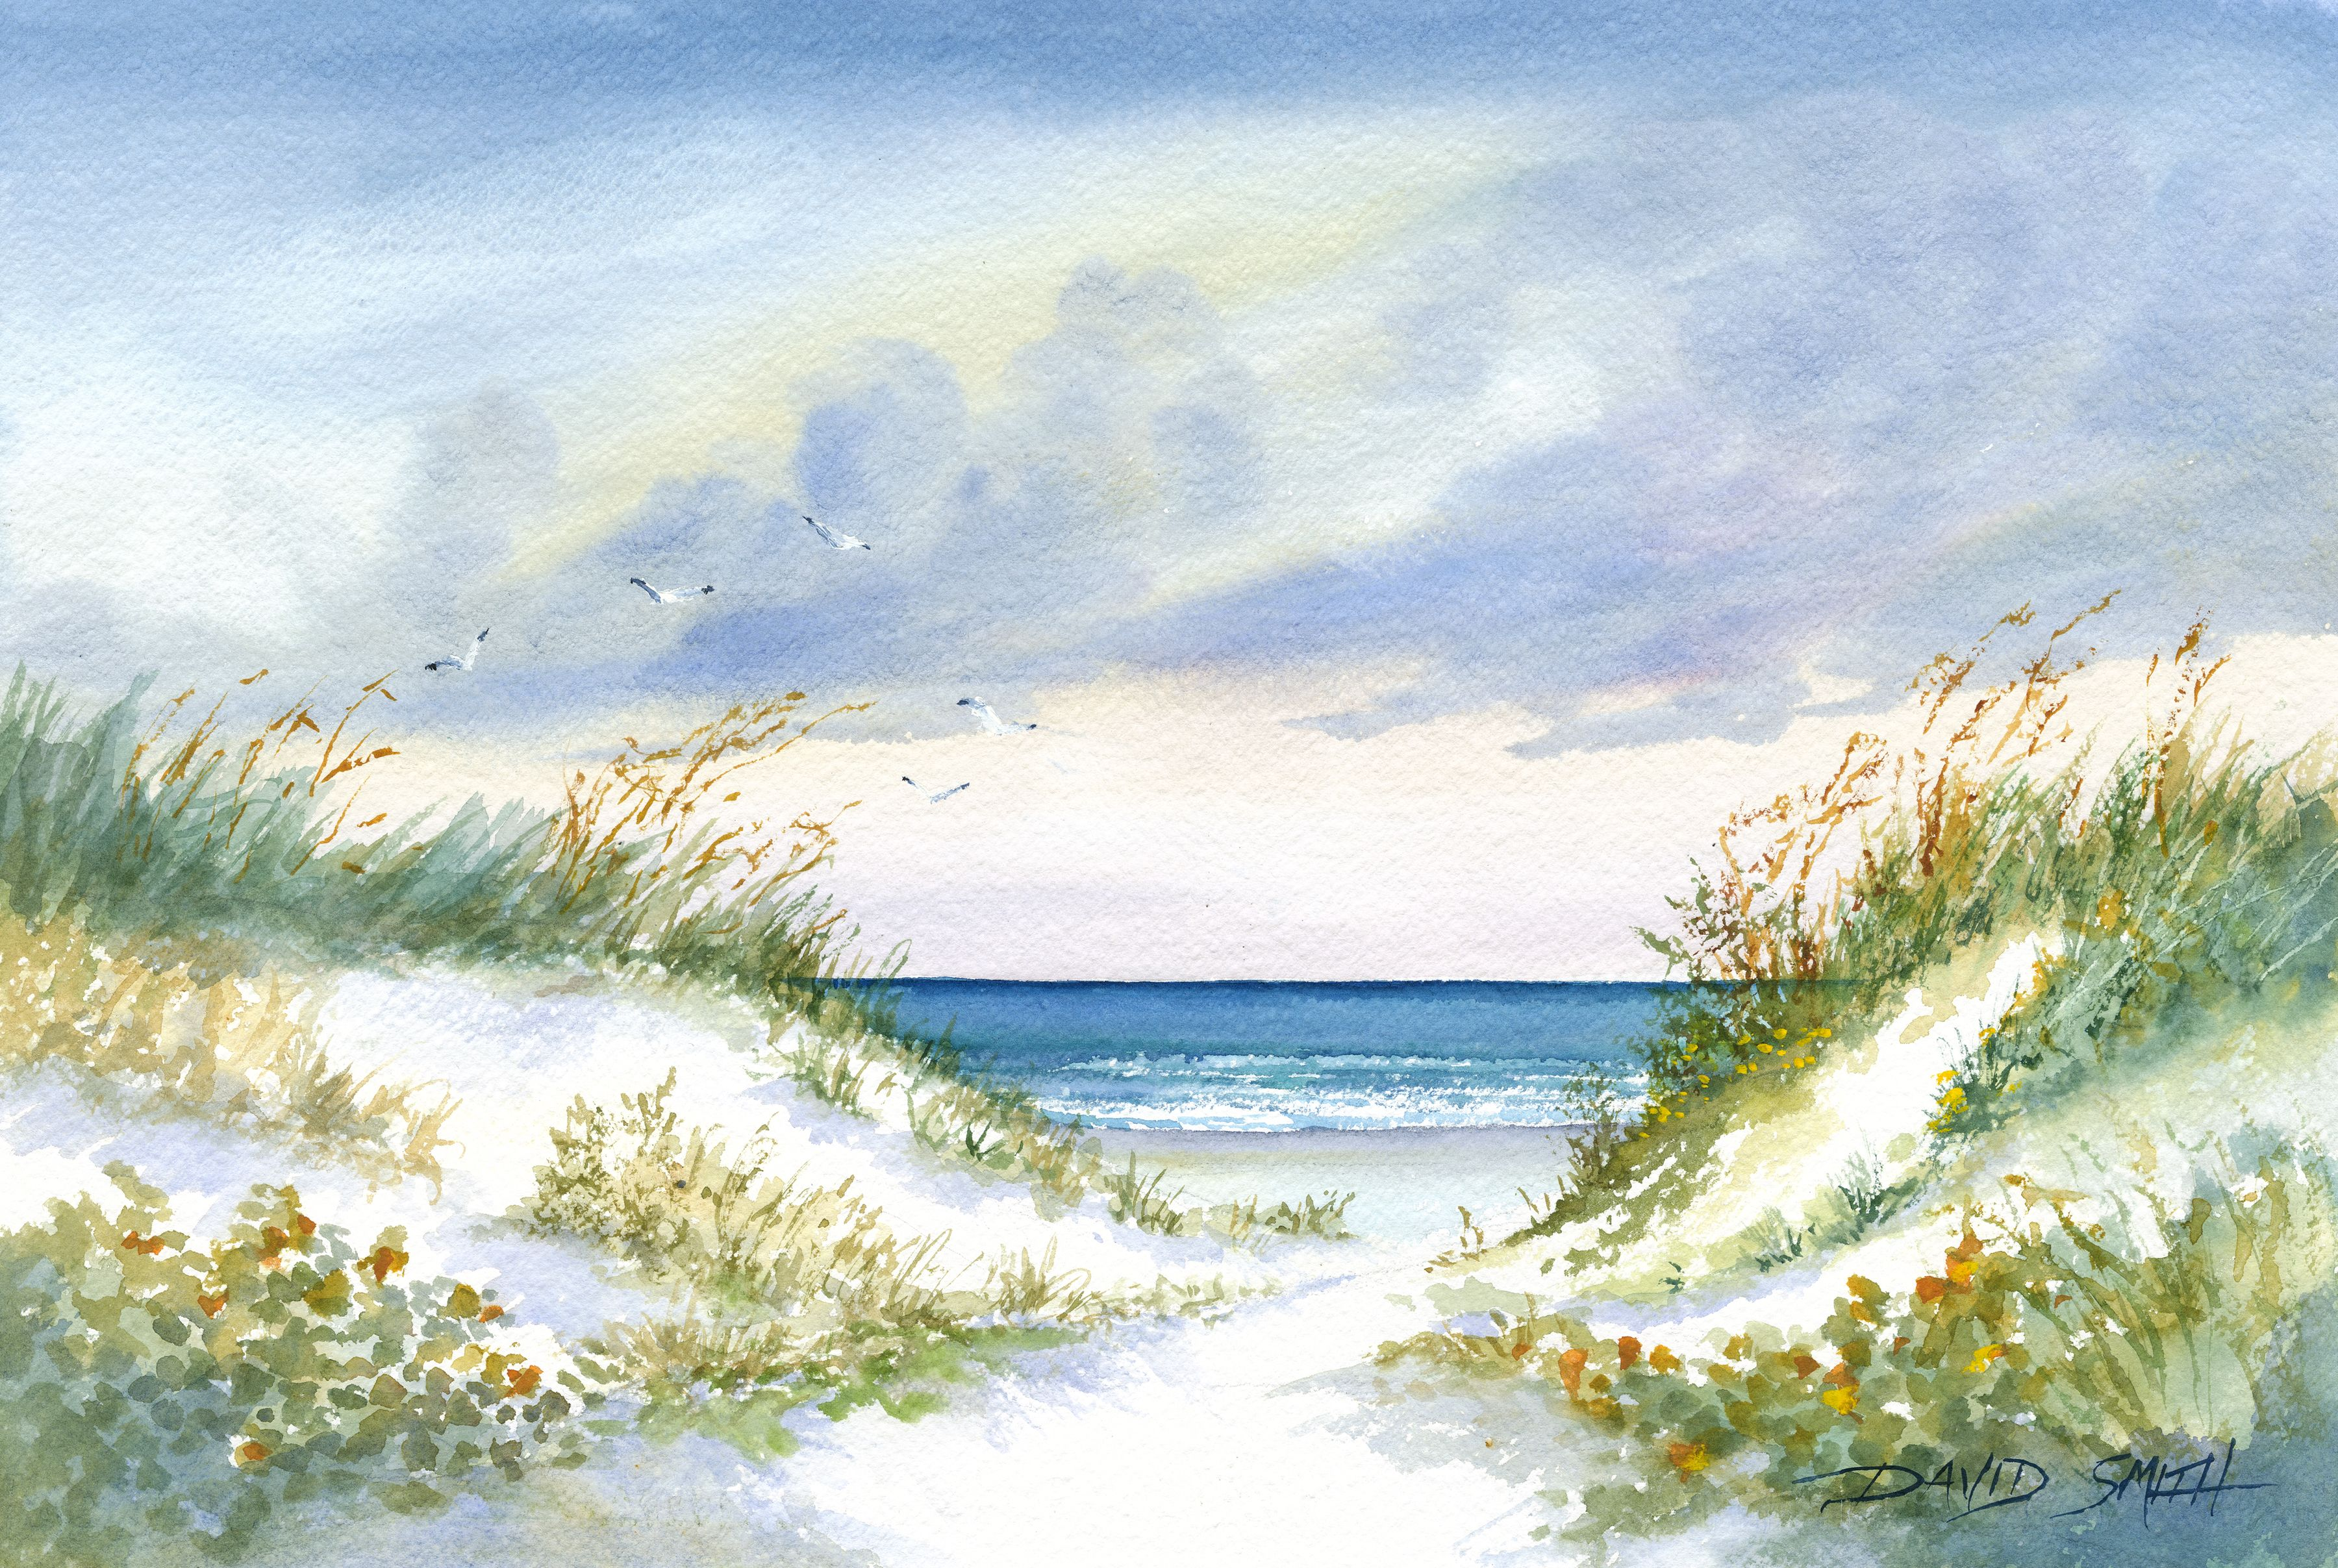 One Point Of View Pass A Grille Fl Watercolor By David Smith Go To Island Boy Studio On Facebook Beach Watercolor Watercolor Art